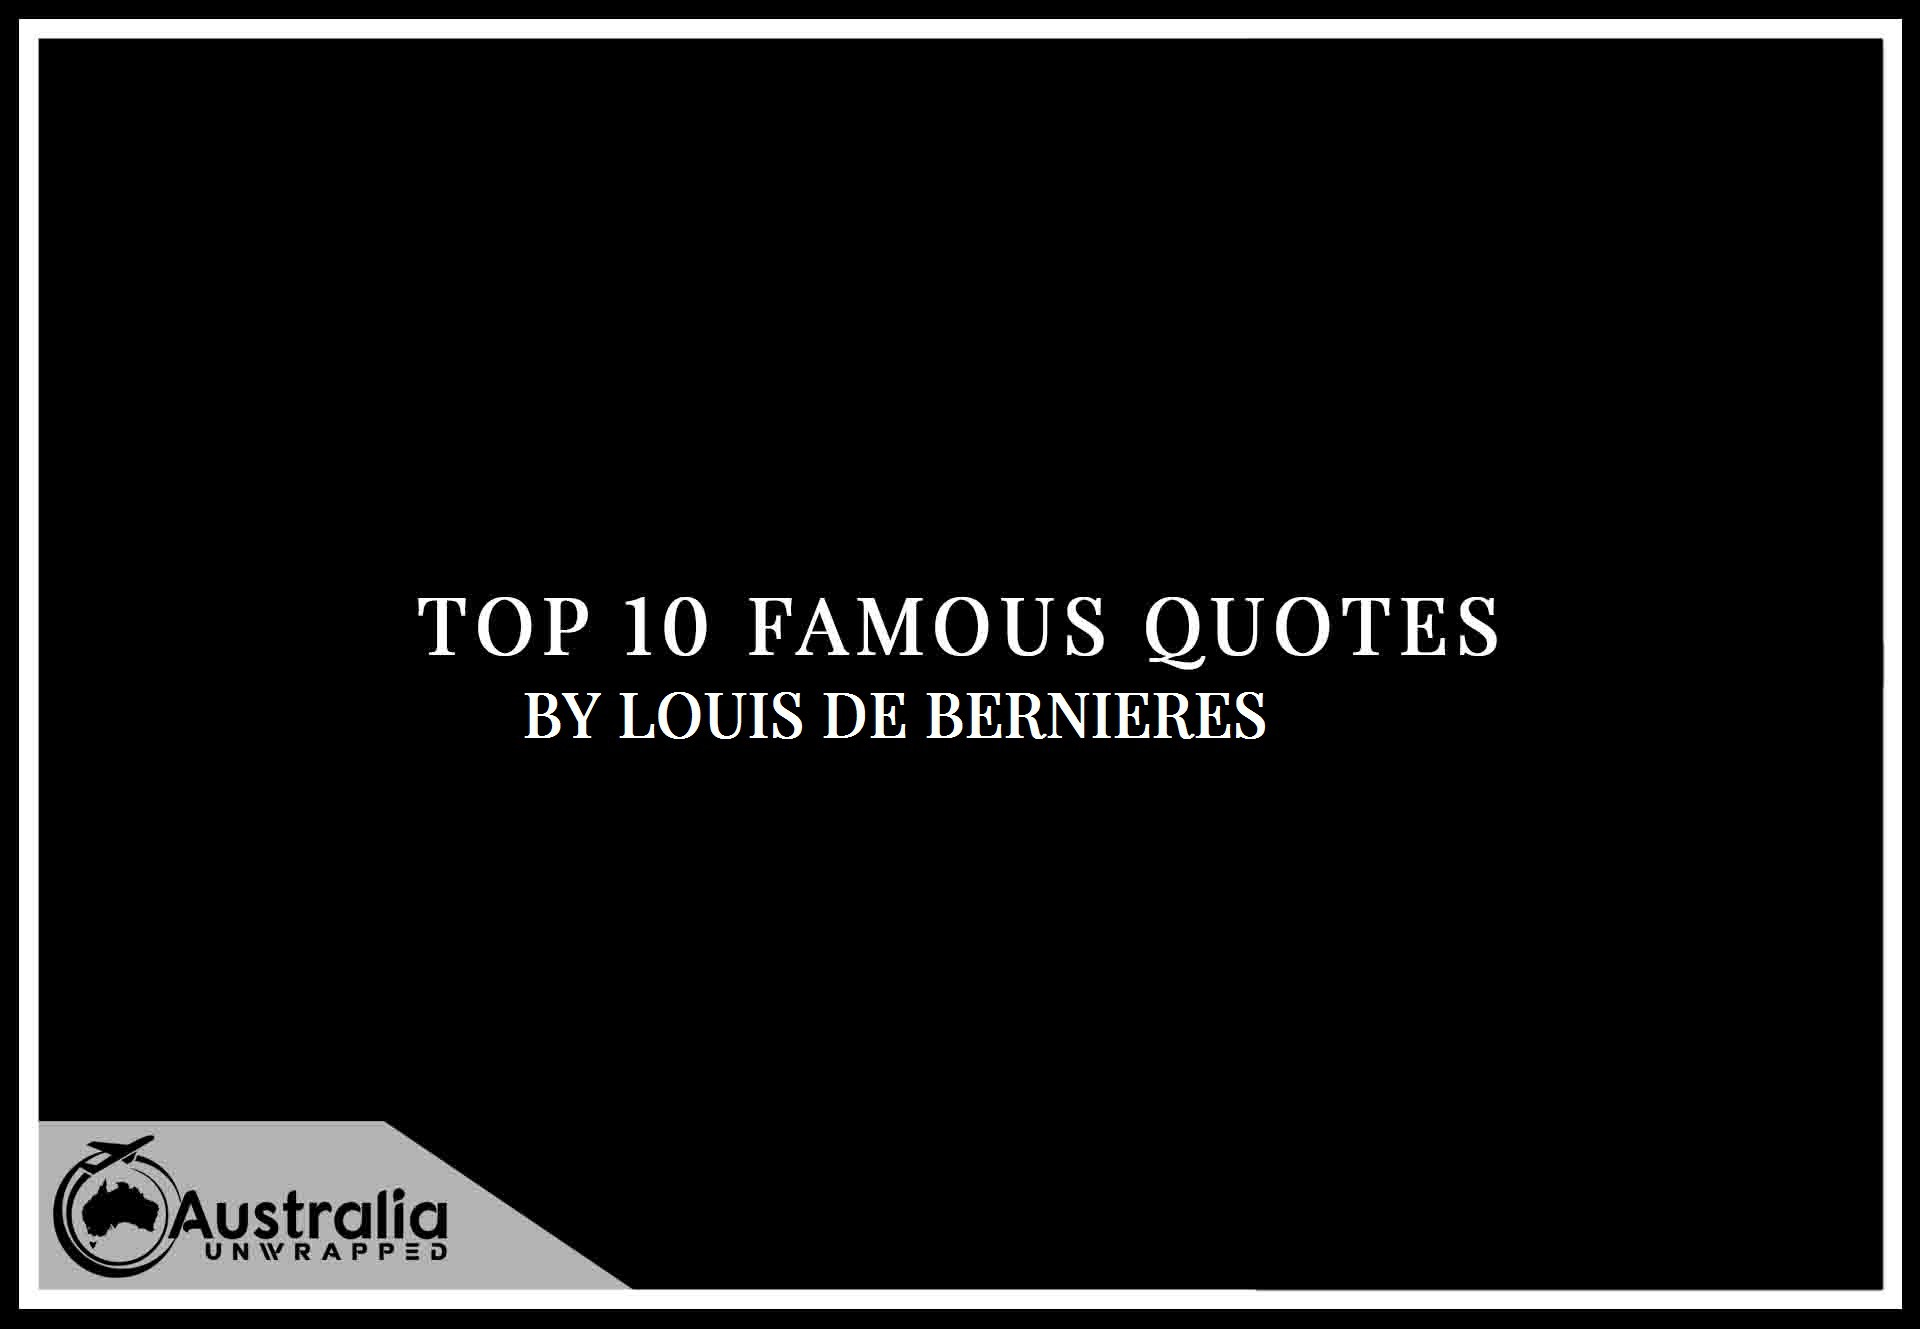 Louis de Bernières's Top 10 Popular and Famous Quotes